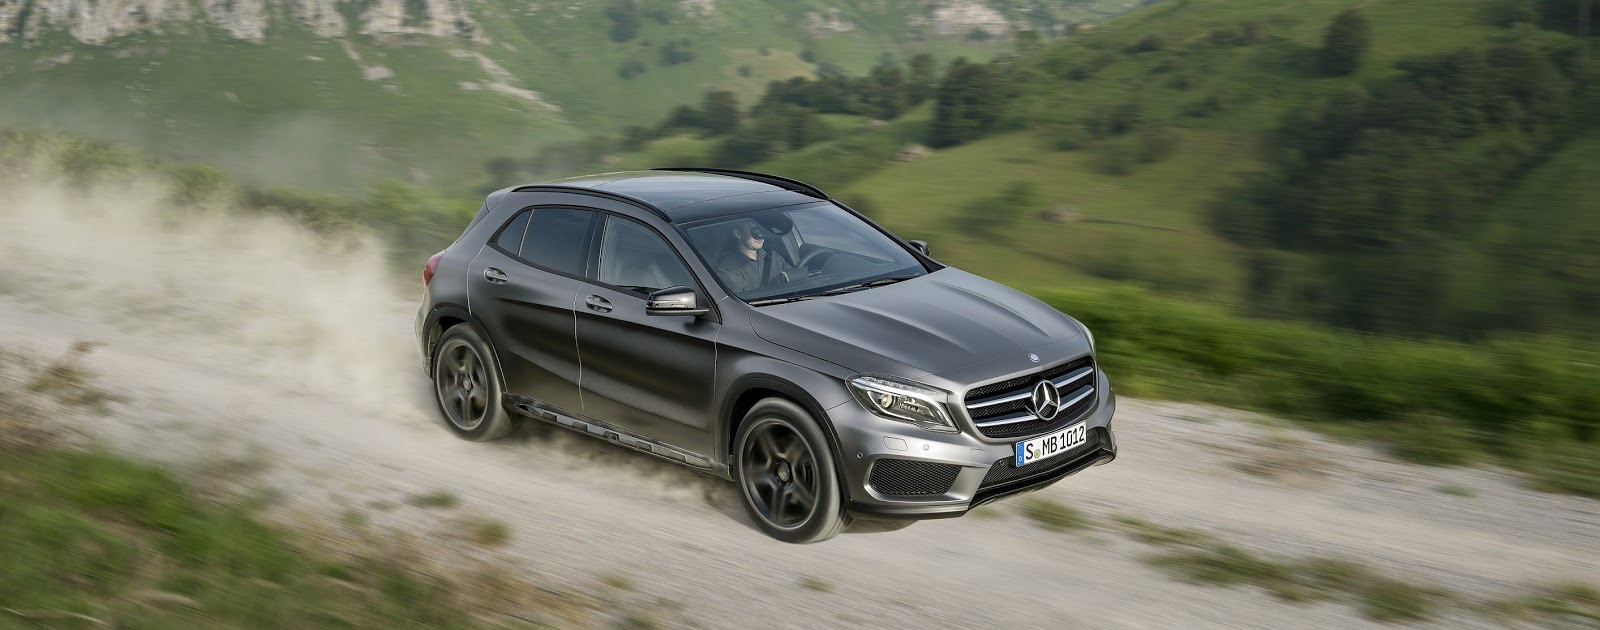 2015 GLA crossover goes official after online leak